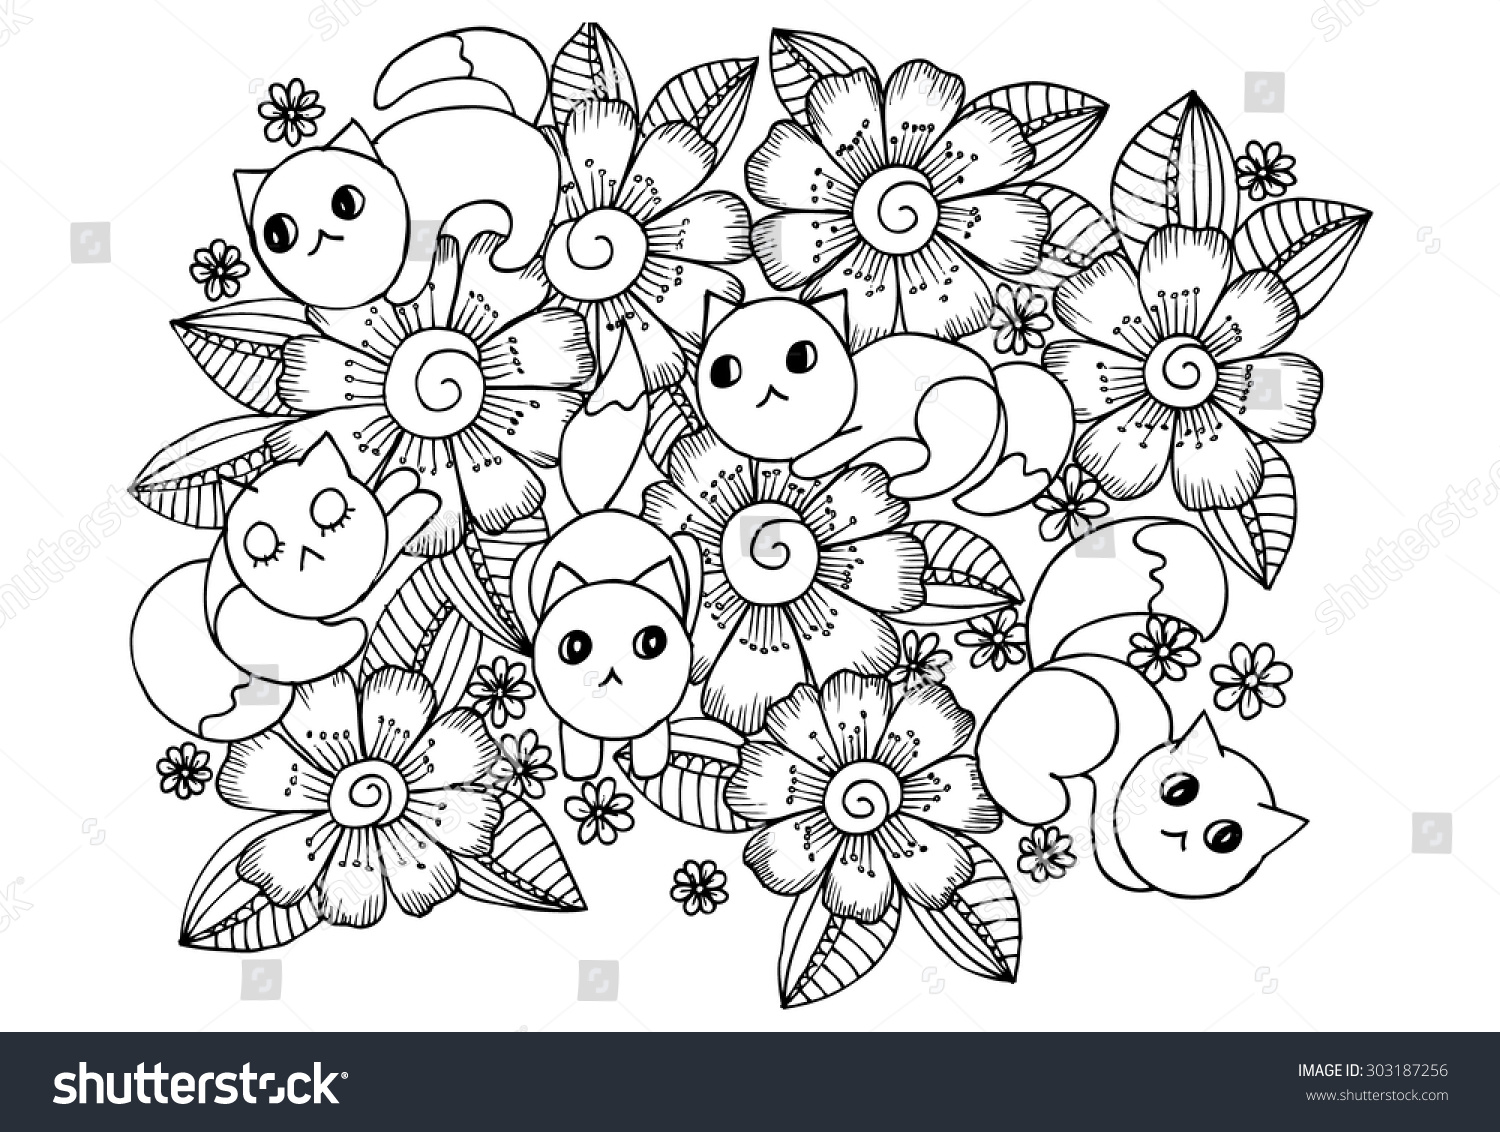 vector doodle cats flowers one color stock vector 303187256